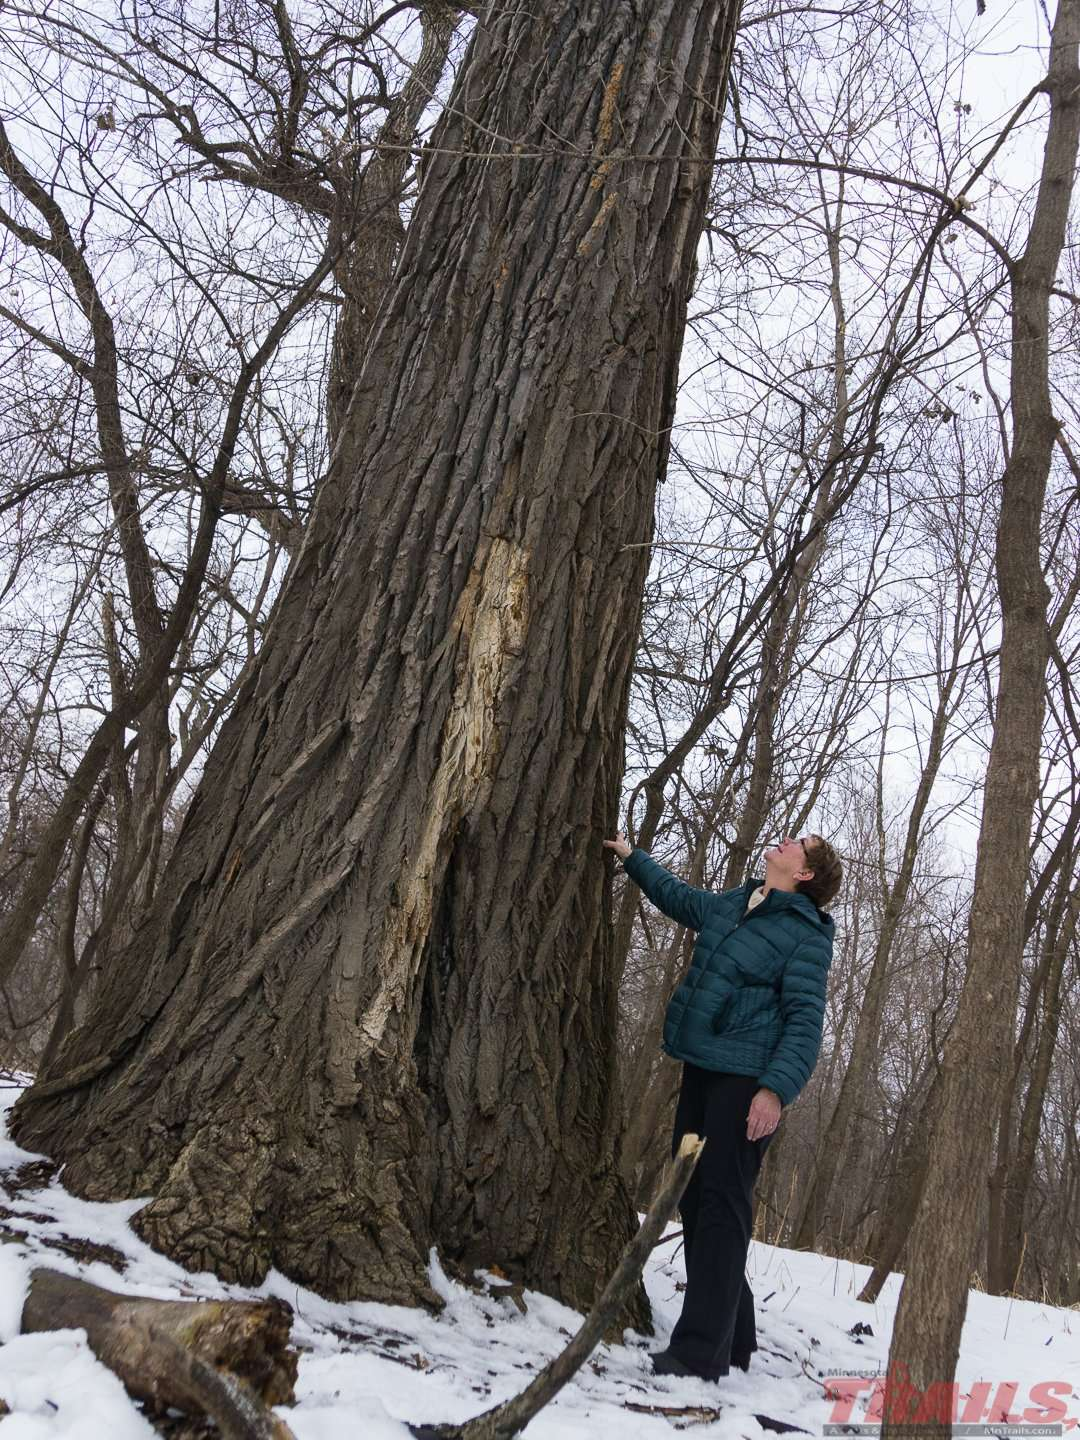 Cottonwoods on Pike Island can dwarf humans at Fort Snelling State Park